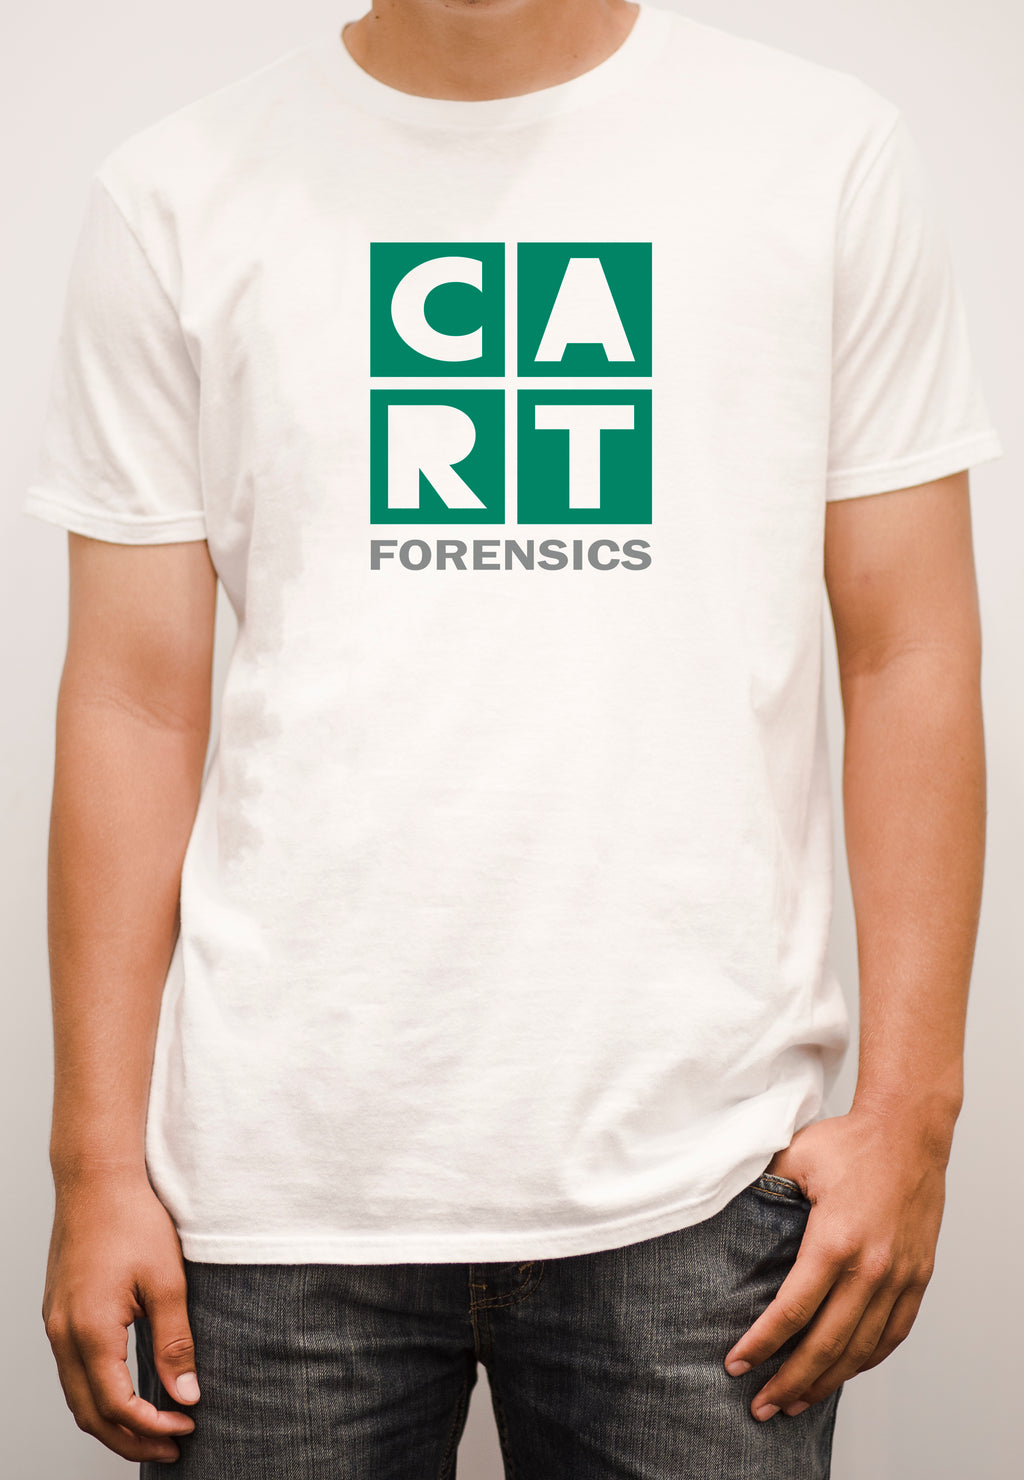 Short sleeve t-shirt - forensics grey/green